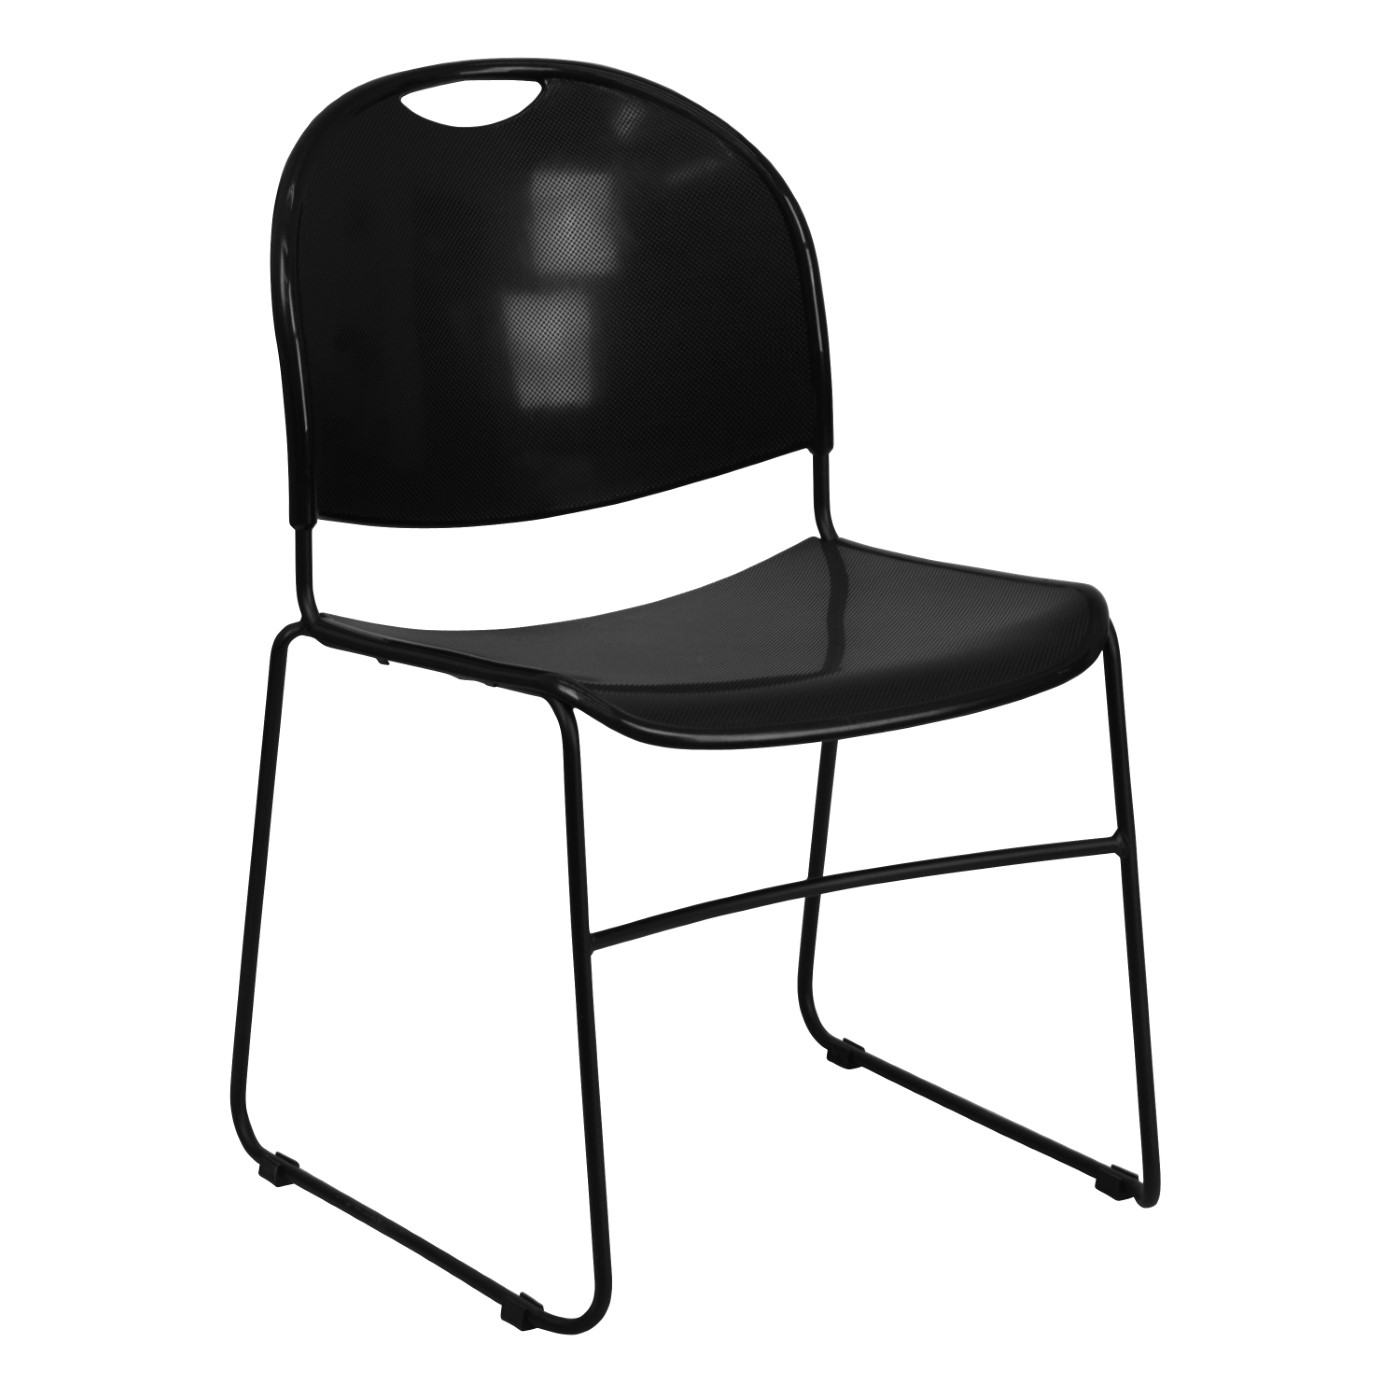 TOUGH ENOUGH Series 880 lb. Capacity Black Ultra-Compact Stack Chair with Black Powder Coated Frame